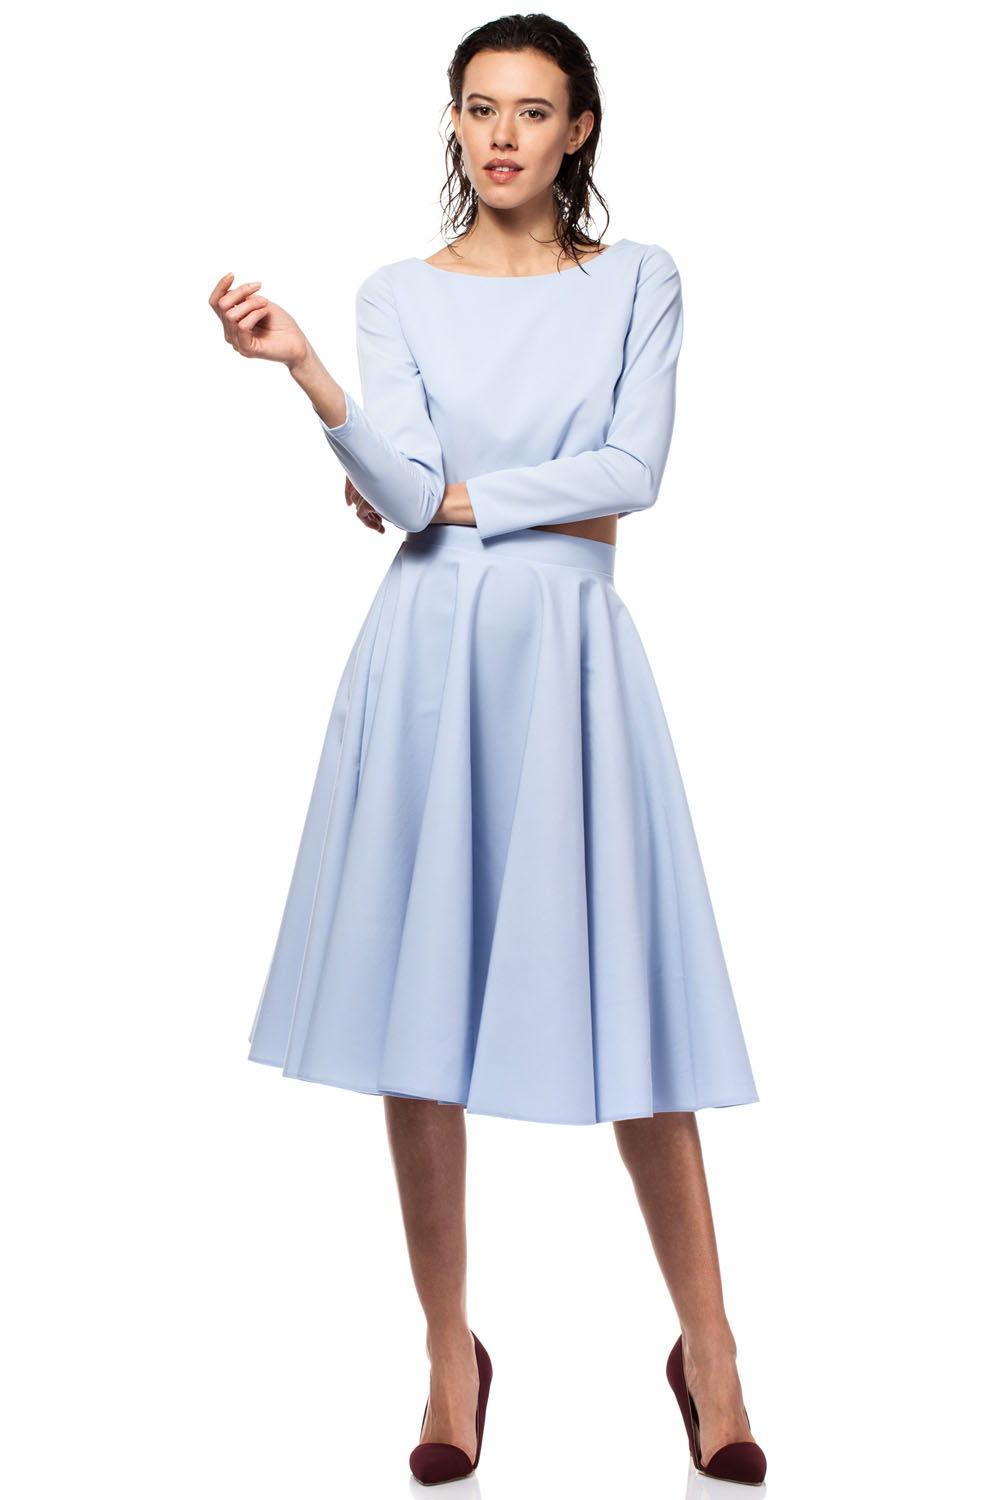 light blue pleated midi skirt with back zipper fastening